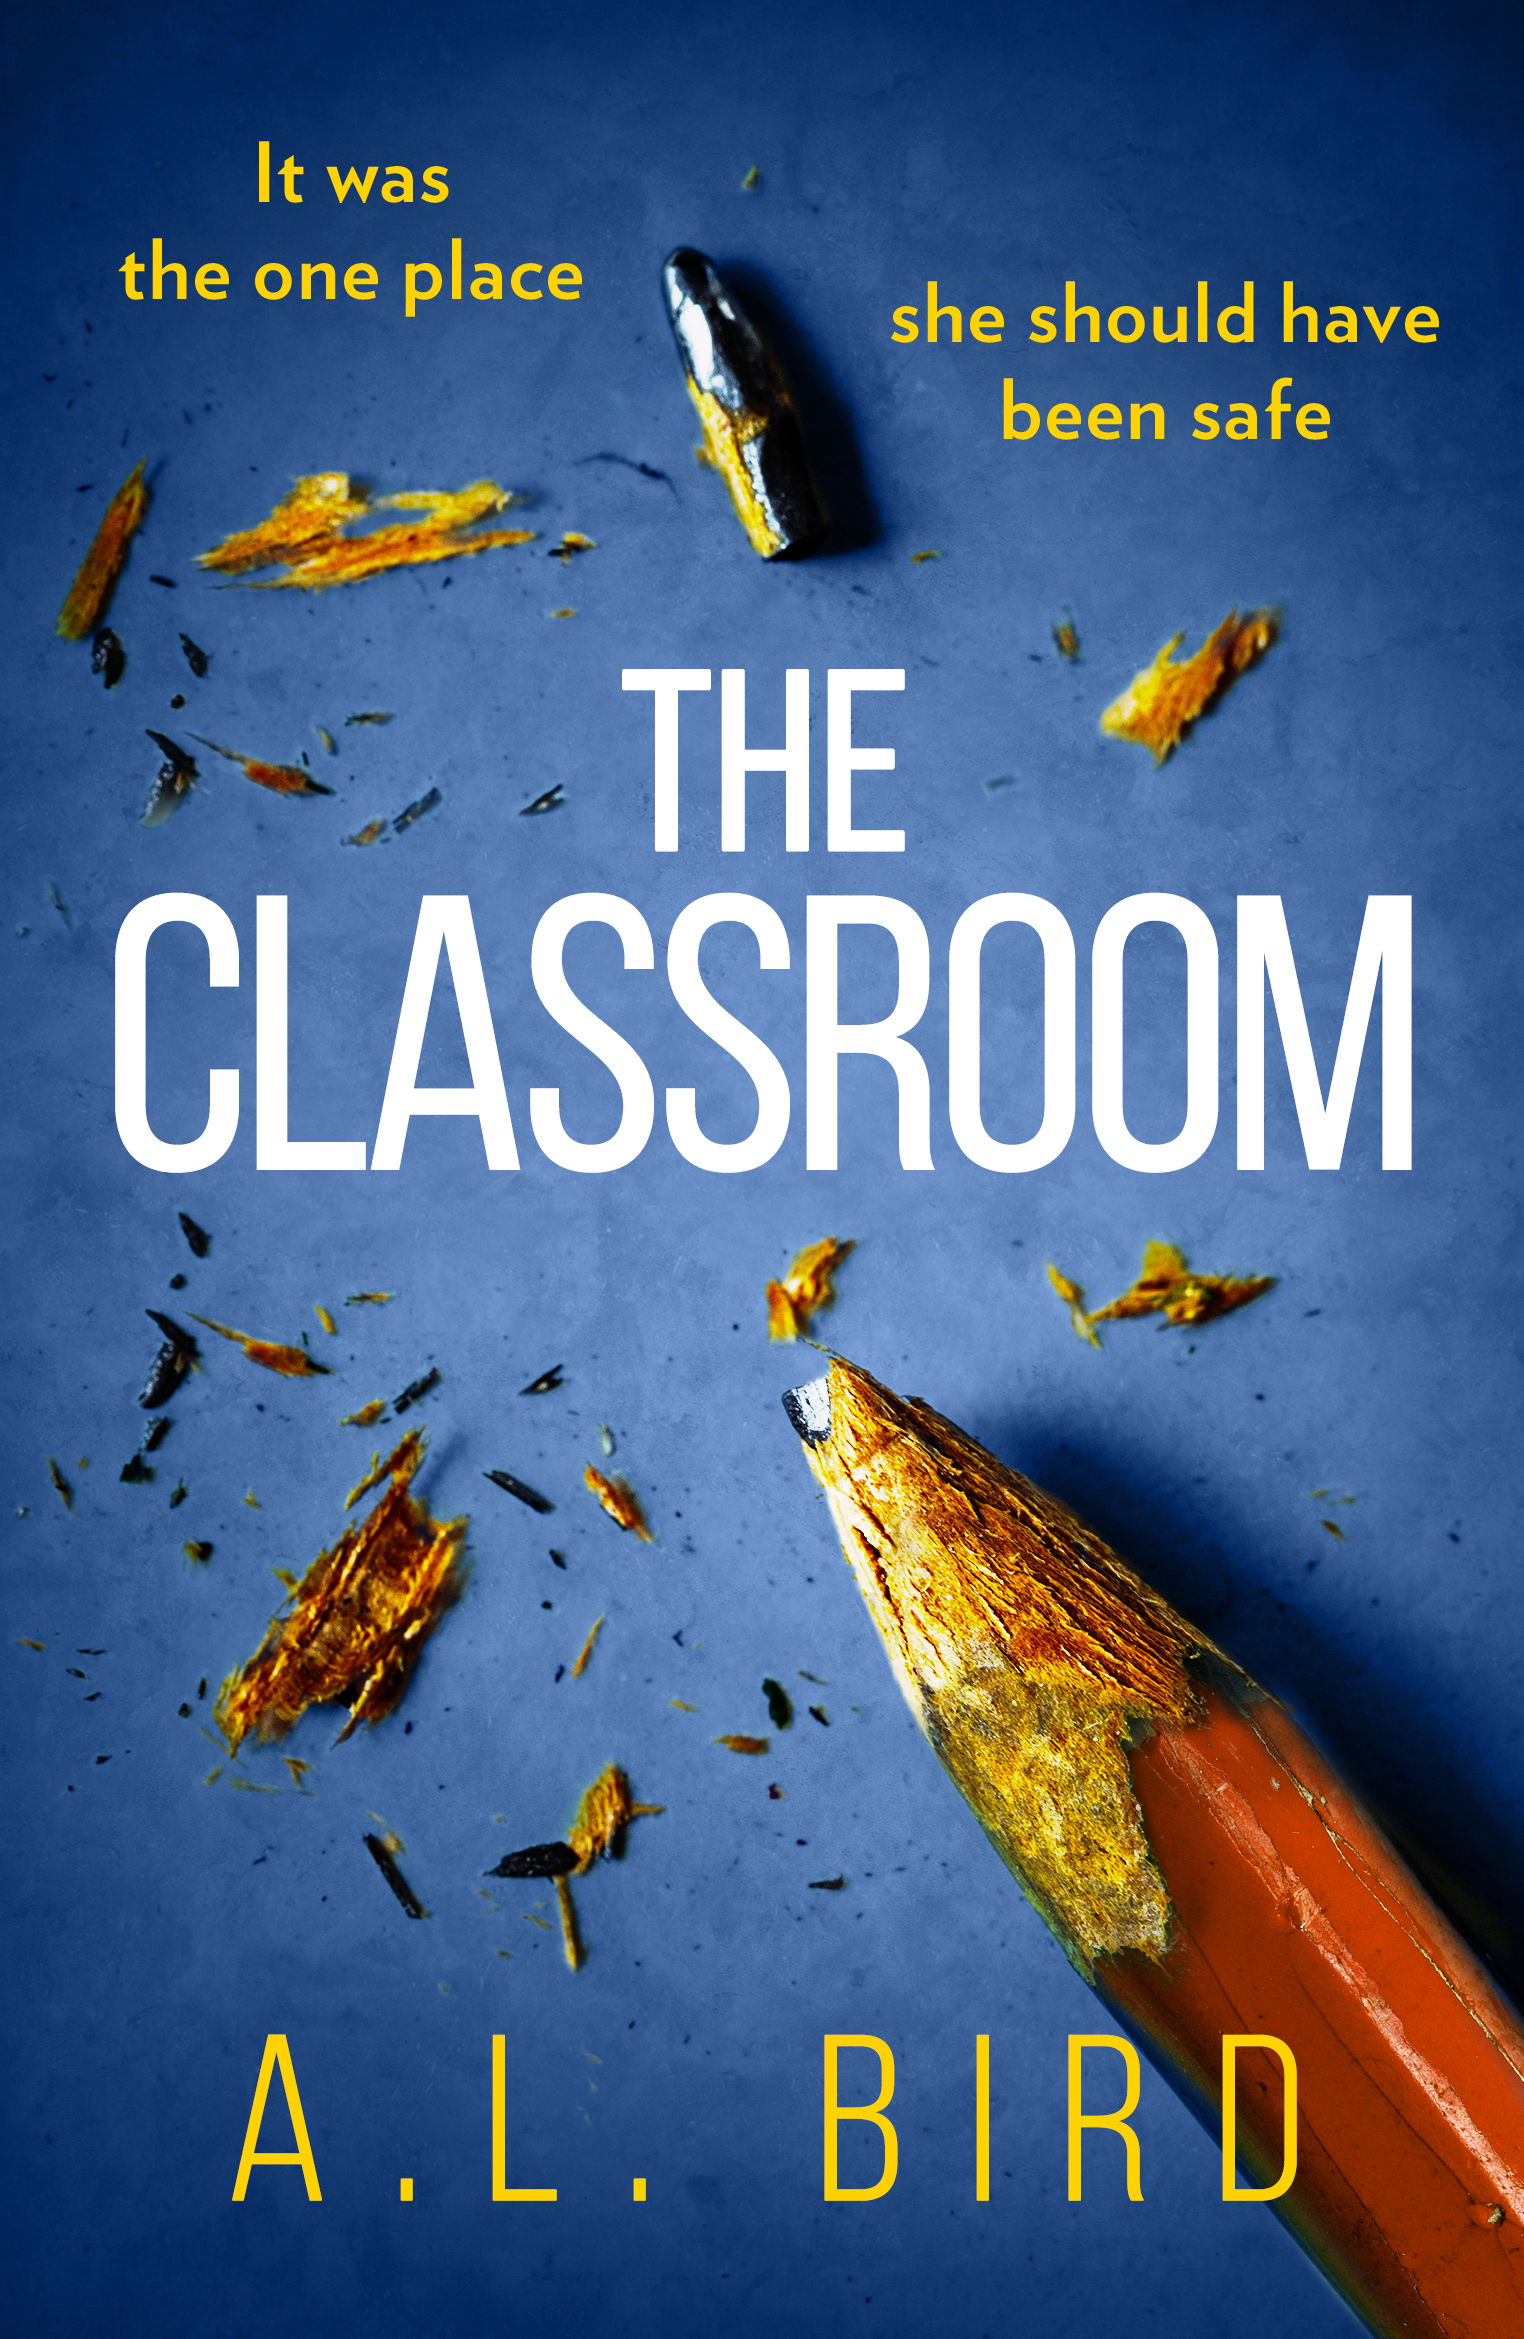 #BookReview of The Classroom by A.L Bird @albirdwriter @hqdigitalUK #TheClassroom #NetGalley